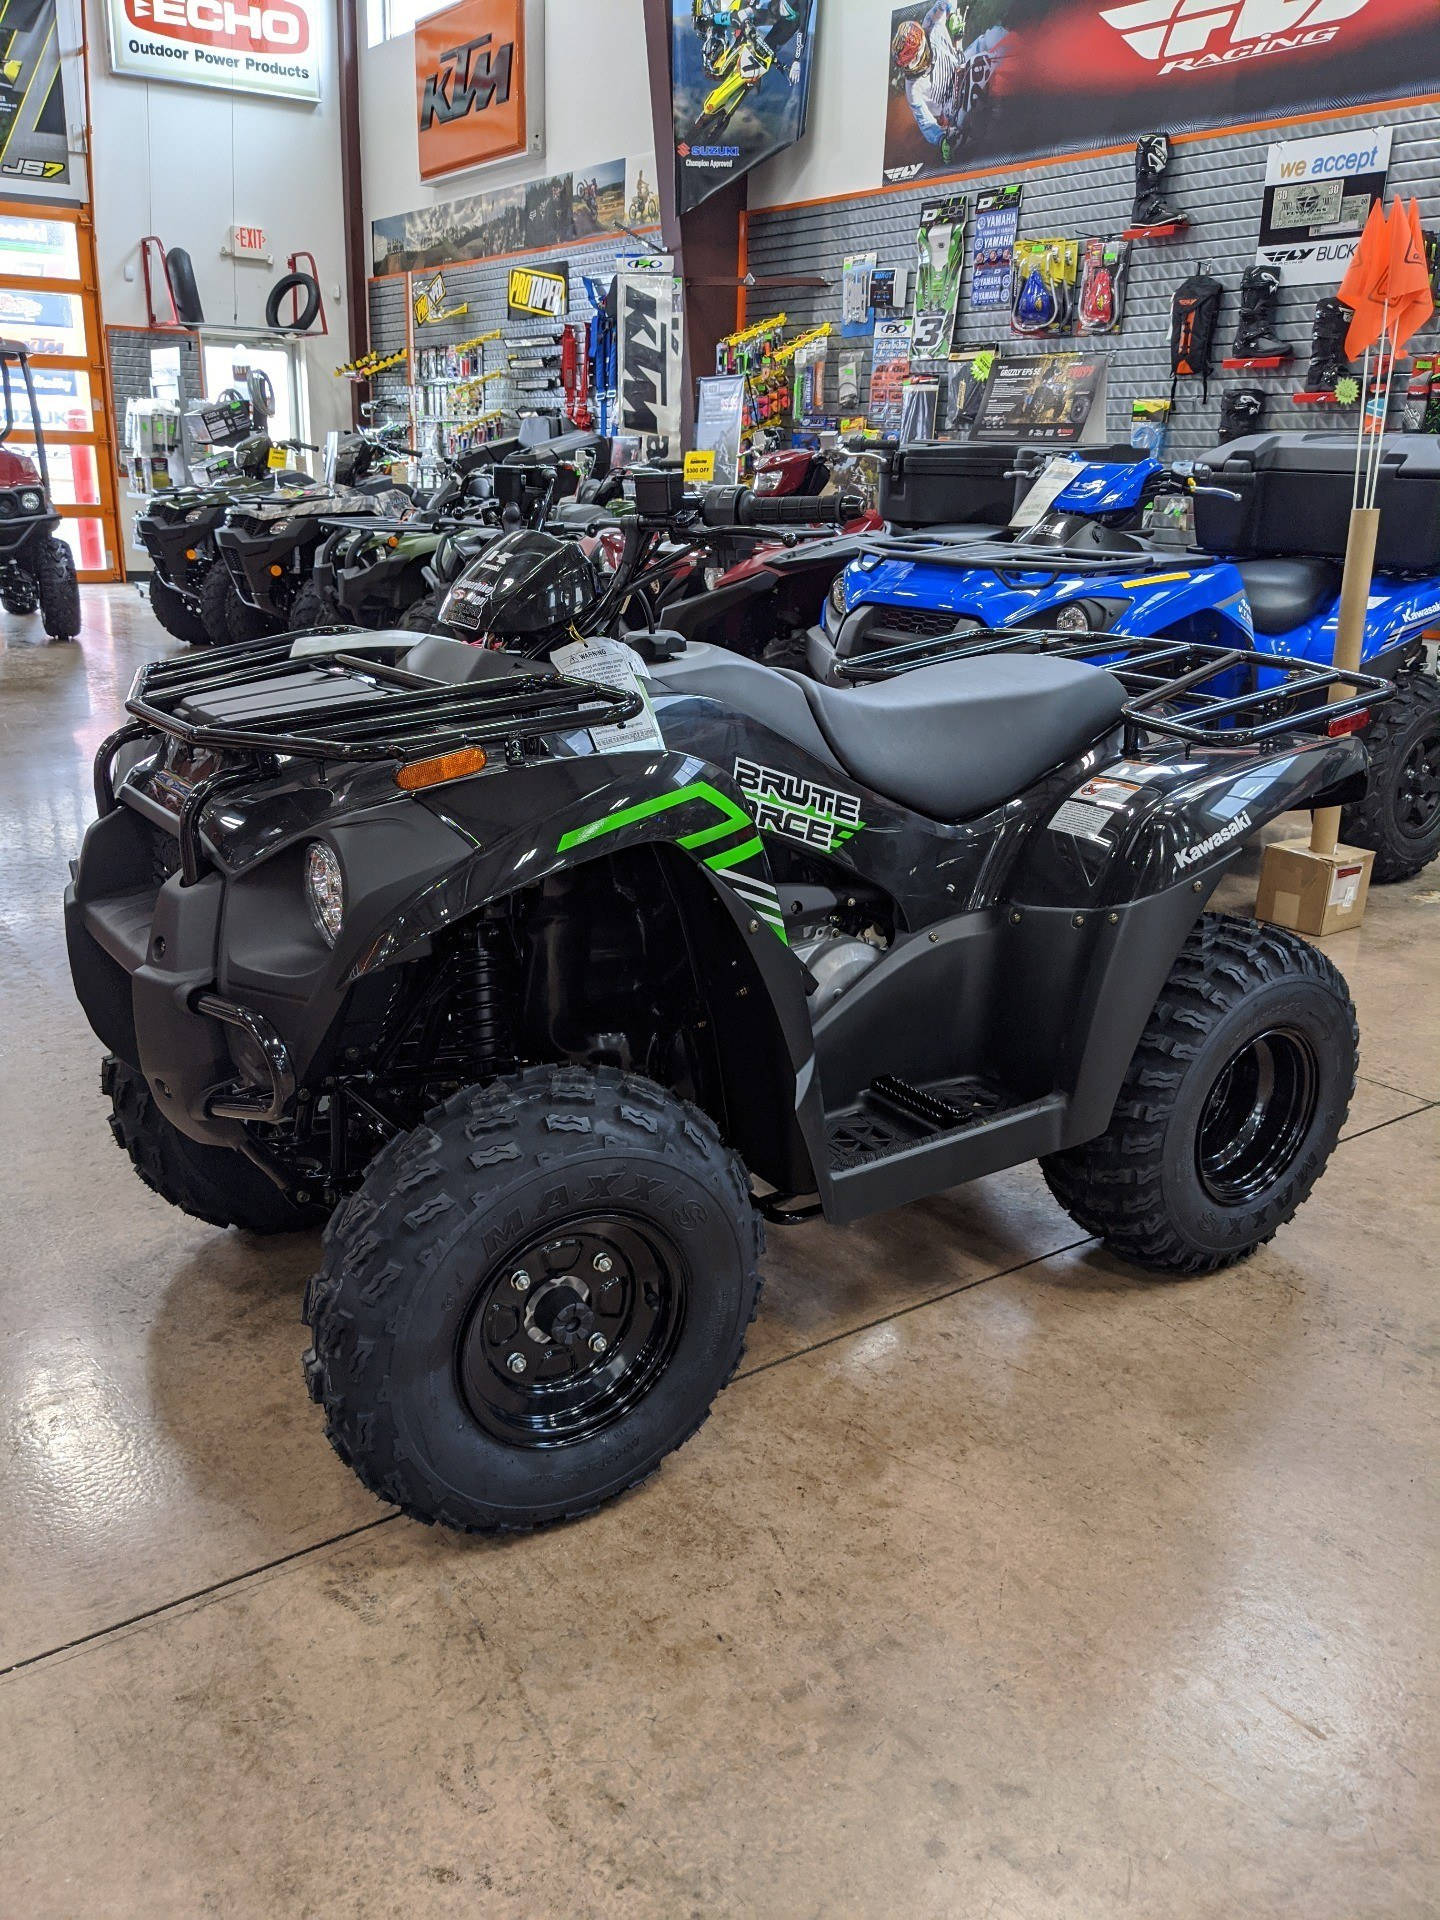 2020 Kawasaki Brute Force 300 in Evansville, Indiana - Photo 4